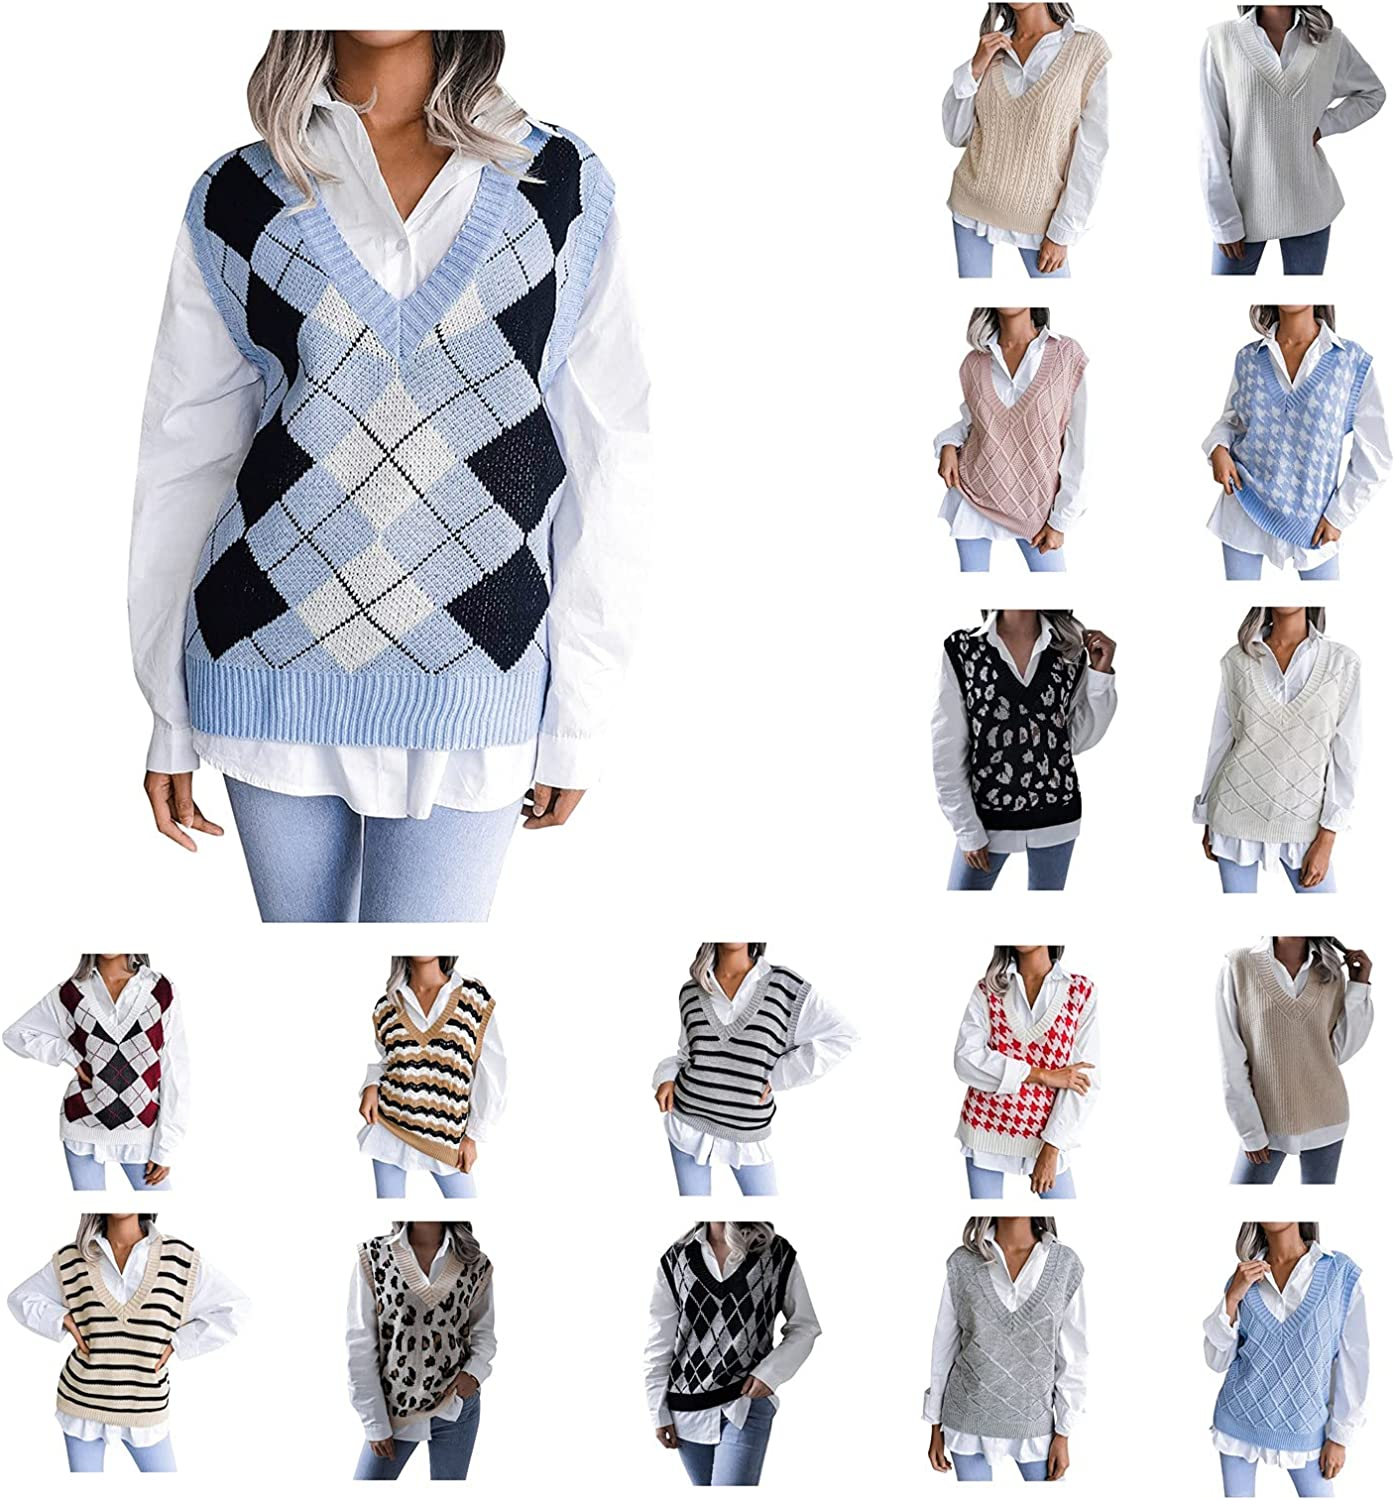 Women's College Style Casual Knitted Vest Loose Casual Diamond Pattern V-Neck Sweater Sleeveless Pullover